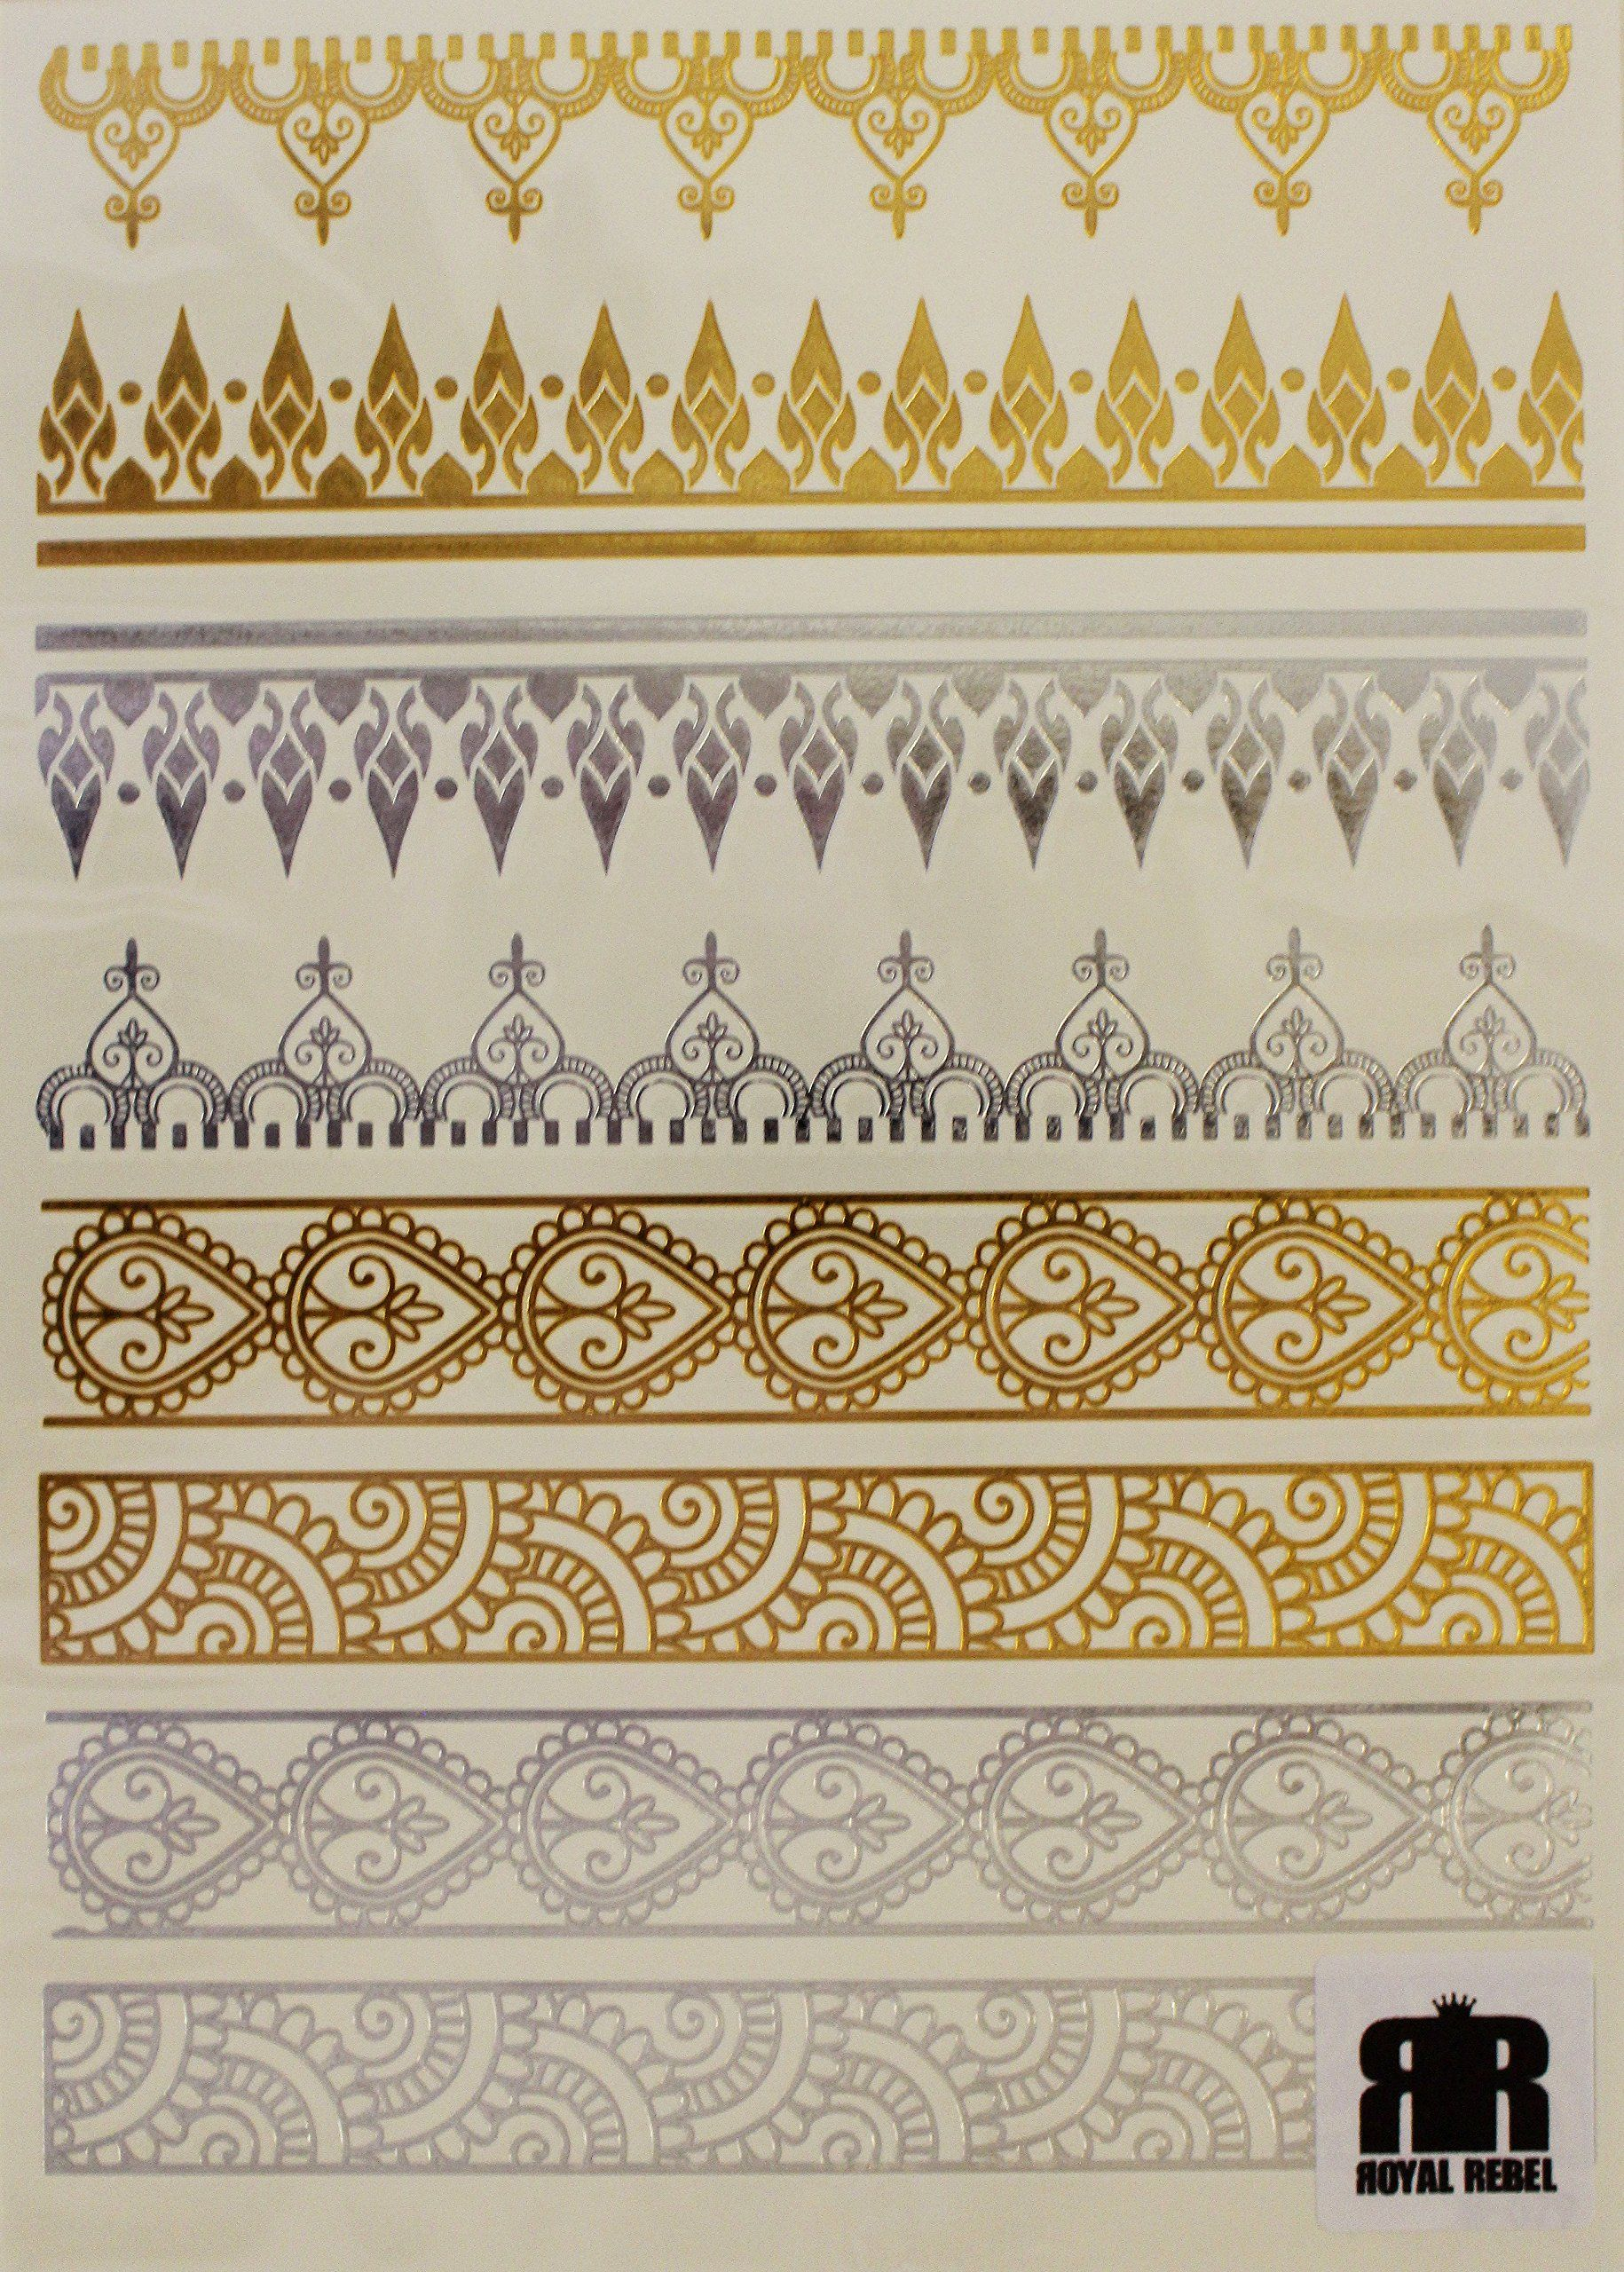 Beautiful Metallic Temporary Tattoo Bracelets (Various Designs) by Royal Rebel (Henna Style Bracelet (2))